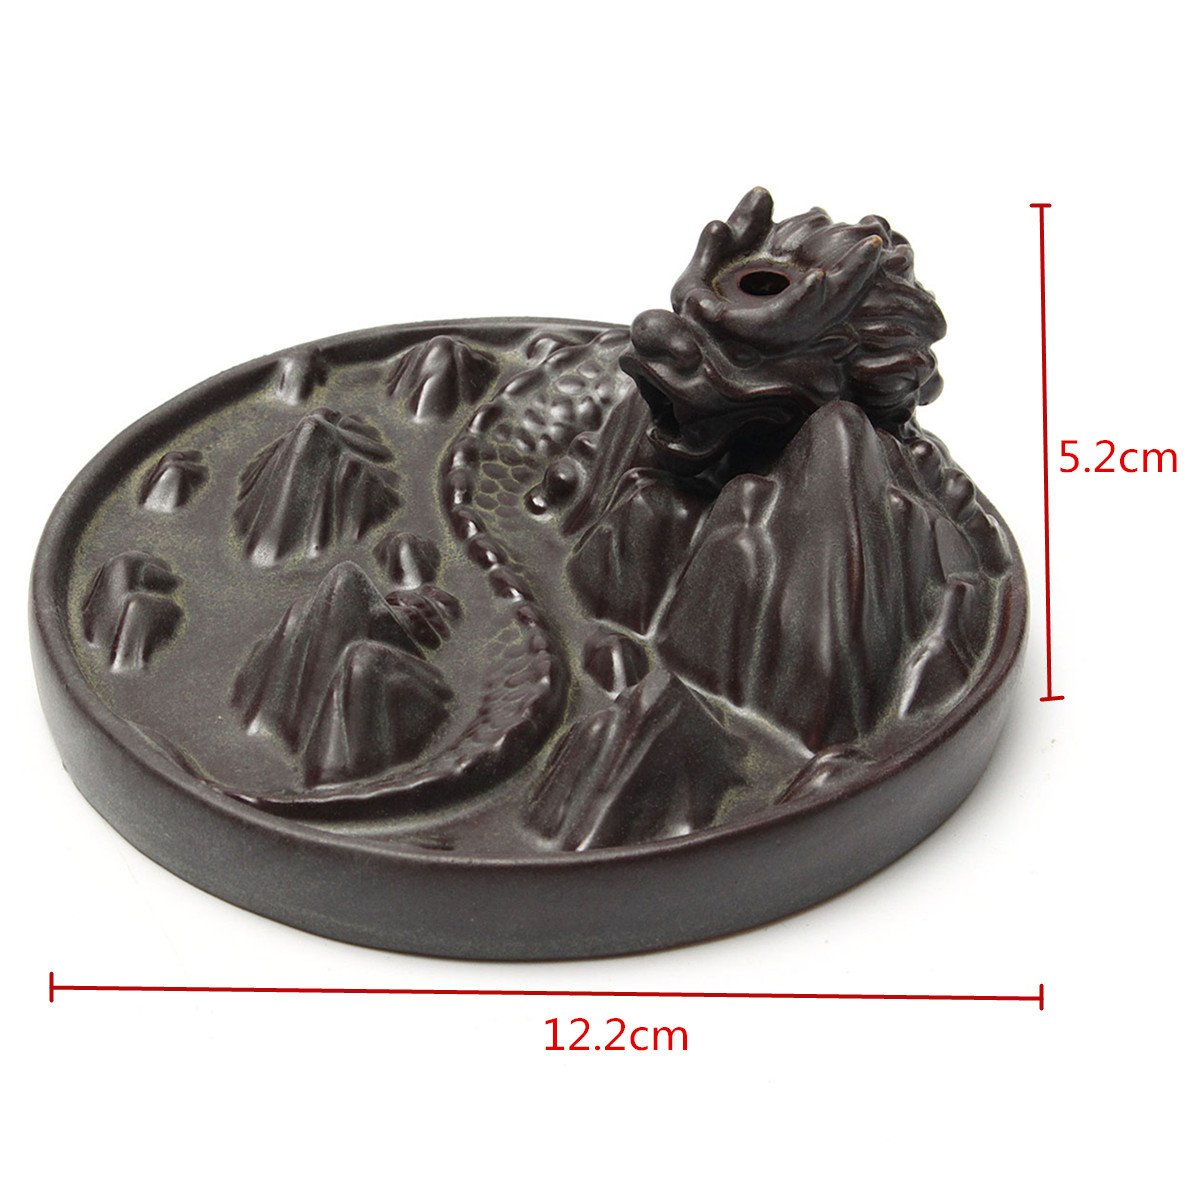 Jeteven Dragon Backflow Incense Burner with Cones Ceramic Dragon Incense Holder \'\'Dragon Mountain\'\' 12.2 x 5.2cm